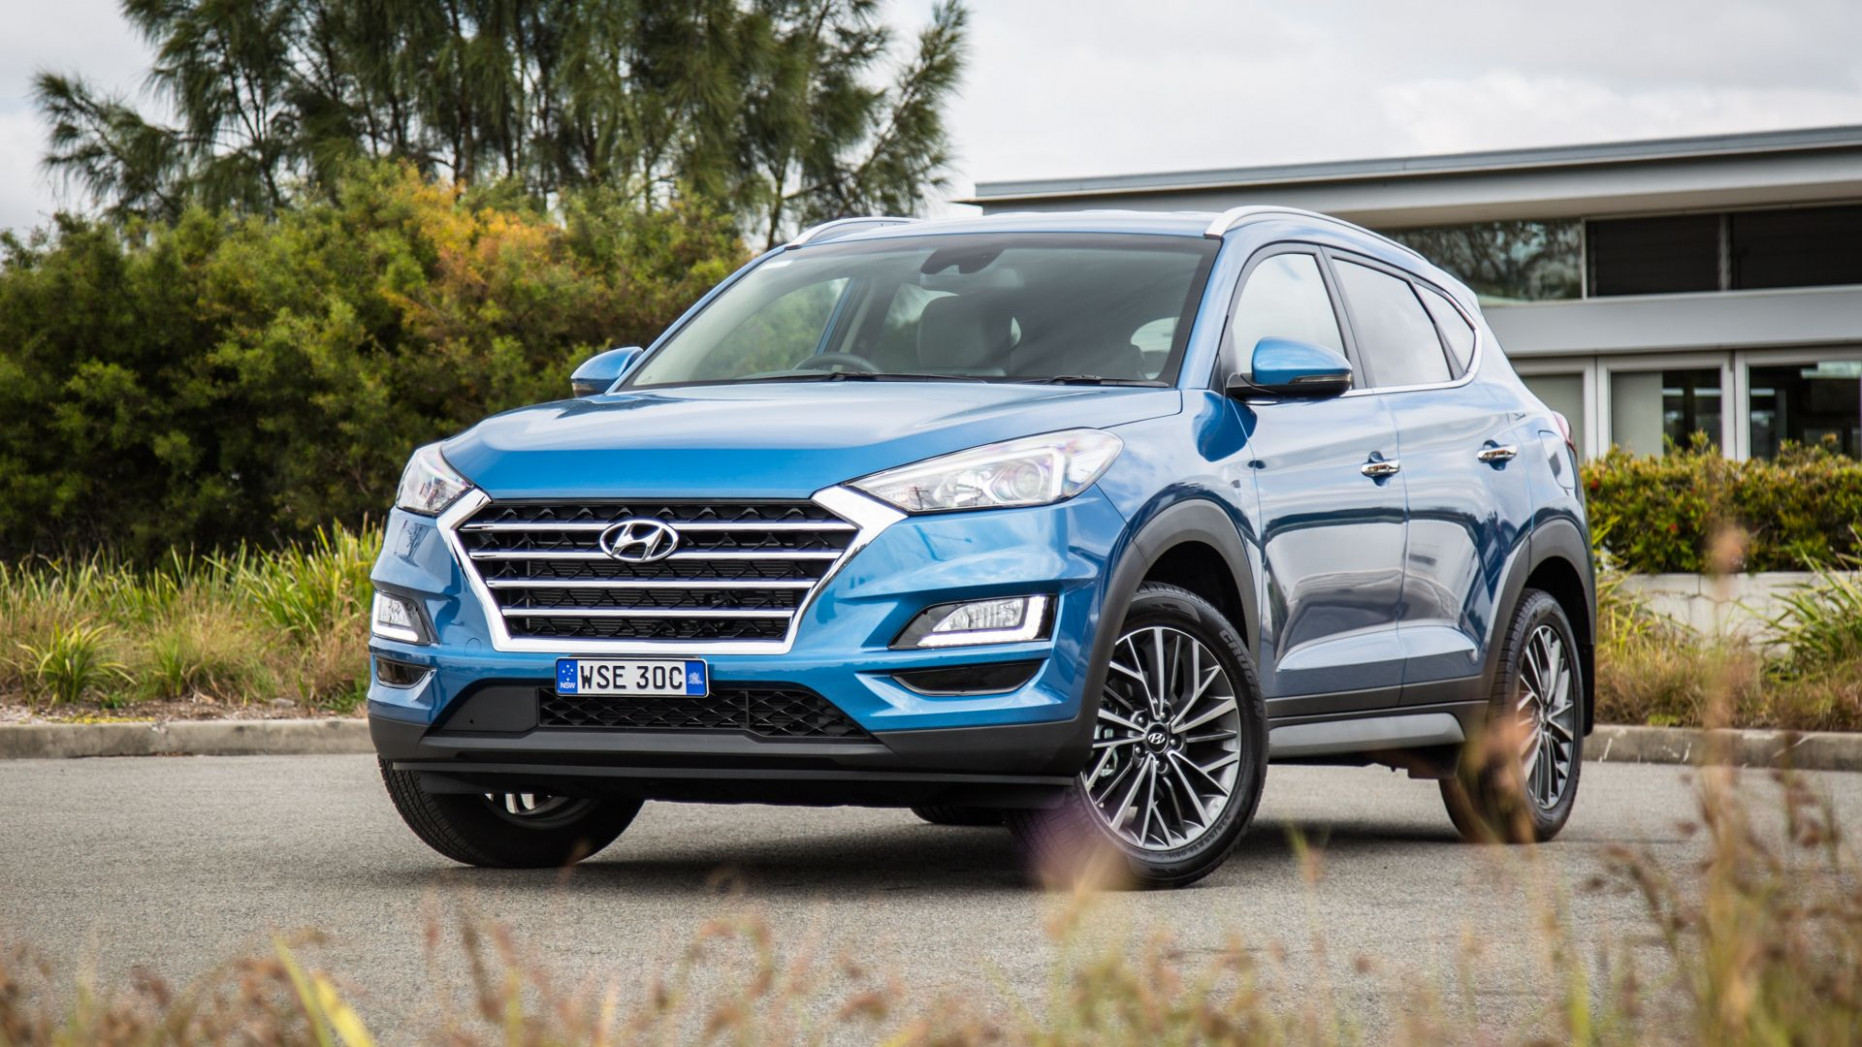 hyundai tucson 8 colors Overview and Price 8*8 - hyundai ..